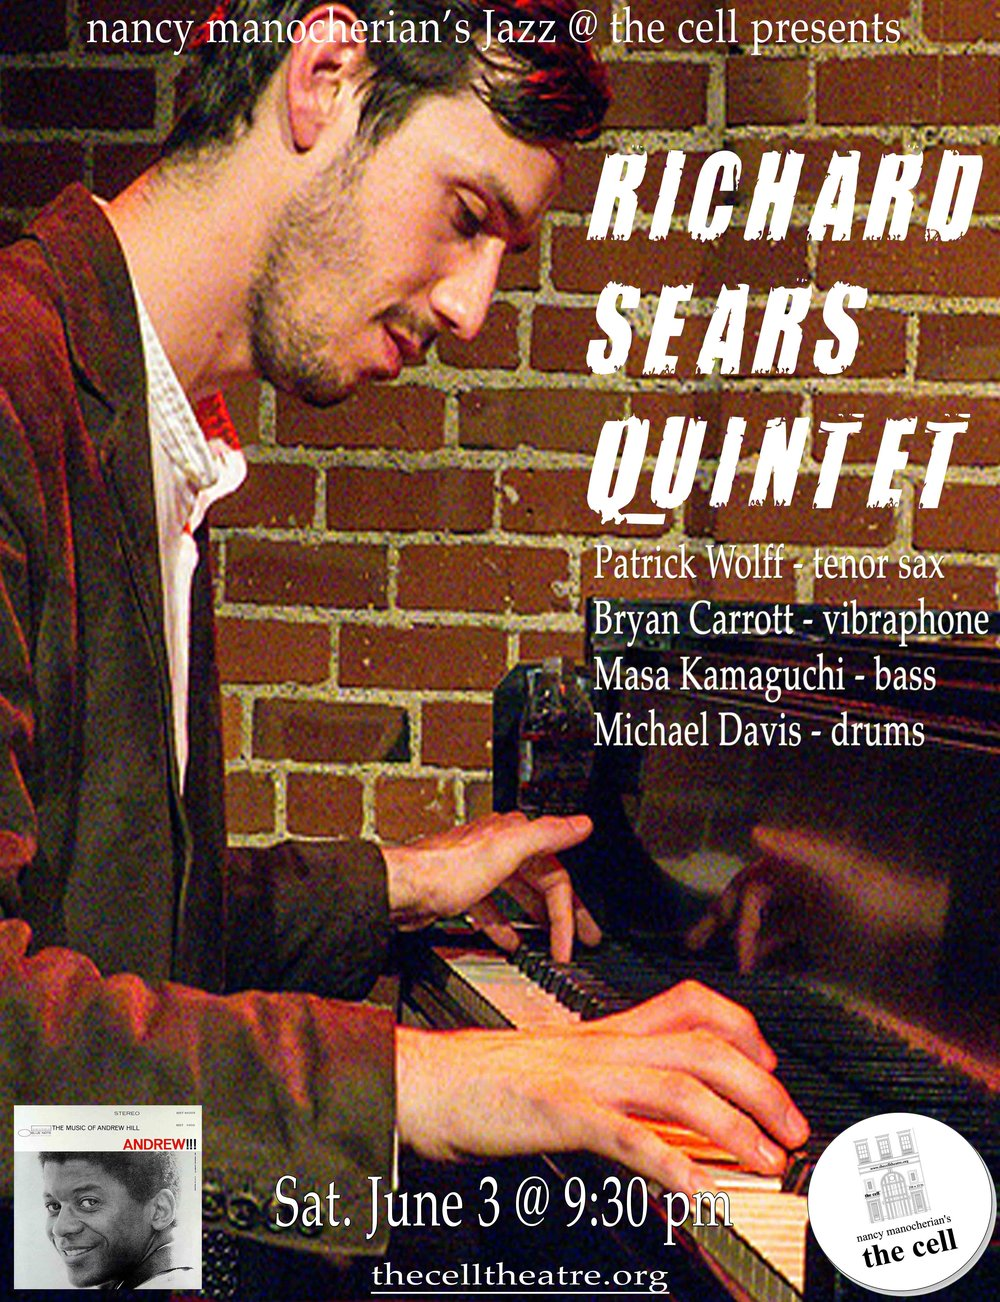 "Pianist Richard Sears possesses an original voice as an improvisor and composer. His composition has been recognized by grants from the Aaron Copland Fund and the Los Angeles Jazz Society. As a performer, Richard has appeared with the likes of Chick Corea, Mark Turner, Muhal Richard Abrams, Joshua Redman, and Billy Hart.  His most recent release, Altadena, features the legendary drummer, Albert Tootie Heath performing with Richards sextet. Altadena earned 4 stars in Downbeat Magazine, and was named one of 2016s best release by AllAboutJazz.  This performance will feature original compositions, as well as selections from  Andrew!!! , the landmark recording by pianist and composer, Andrew Hill.   ""Much in the way classic hard bop married uptempo and soulful grooves, Sears' [quintet] runs with a modern sound but gives it all the energy and heart of the musical past.""  -David Sumner, BandCamp Daily"